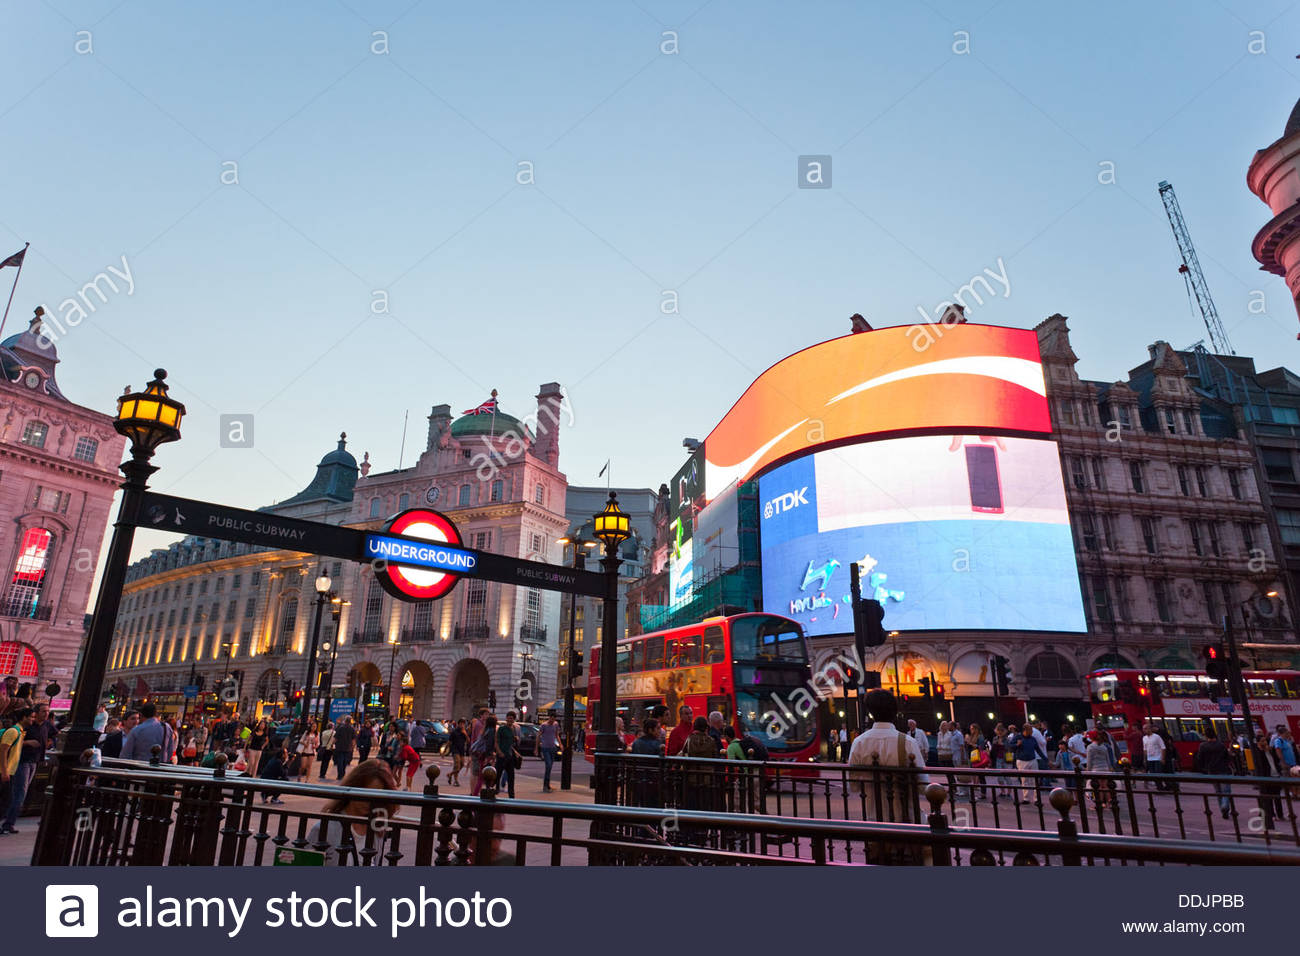 Piccadilly circus with giant tv screens, crowded of people. Underground entrance. - Stock Image